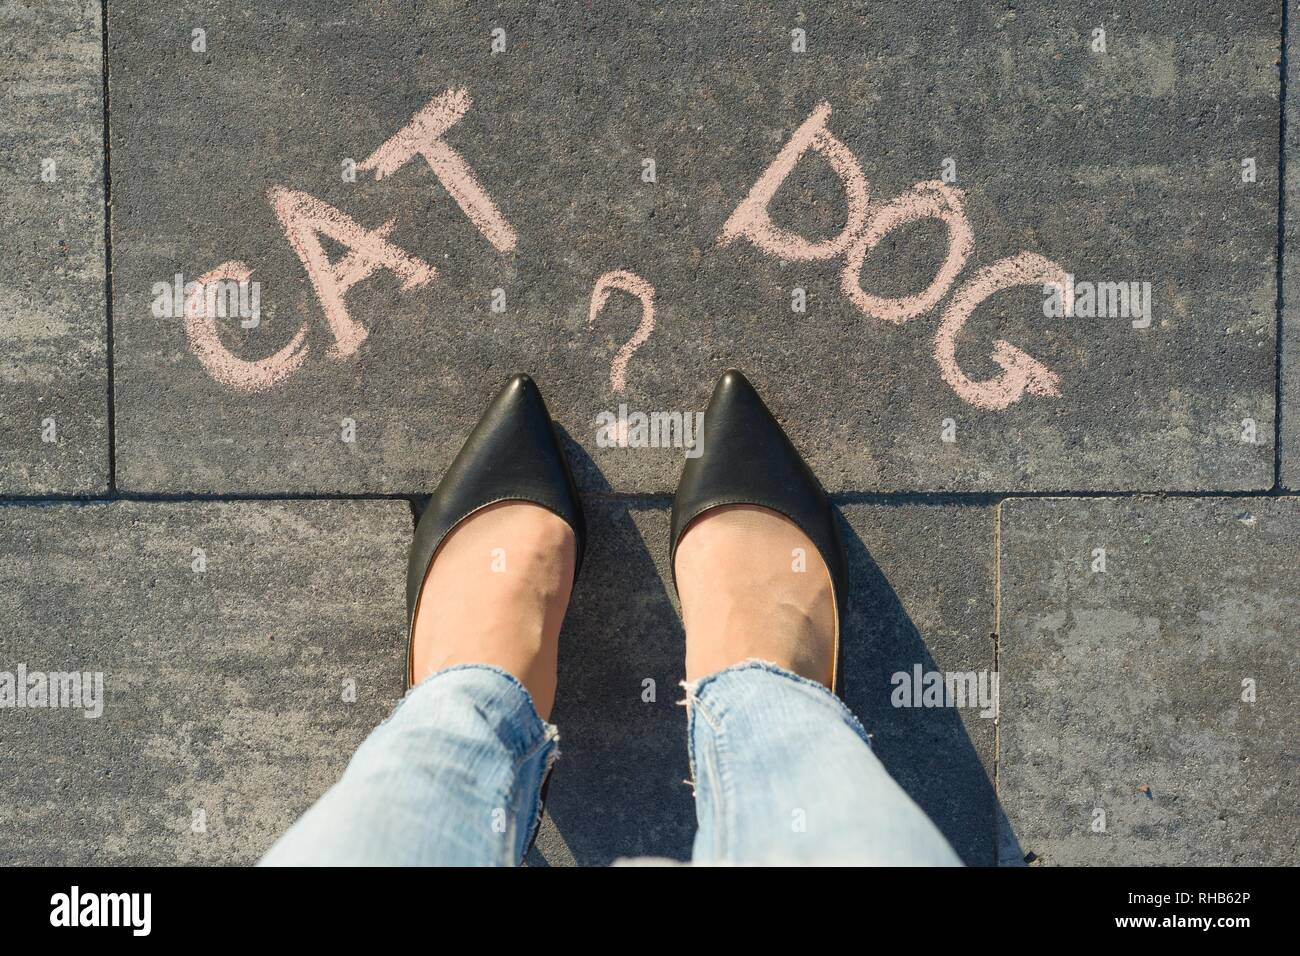 Woman before the choice cat or dog. View from above, female feet with text cat dog written on grey sidewalk - Stock Image